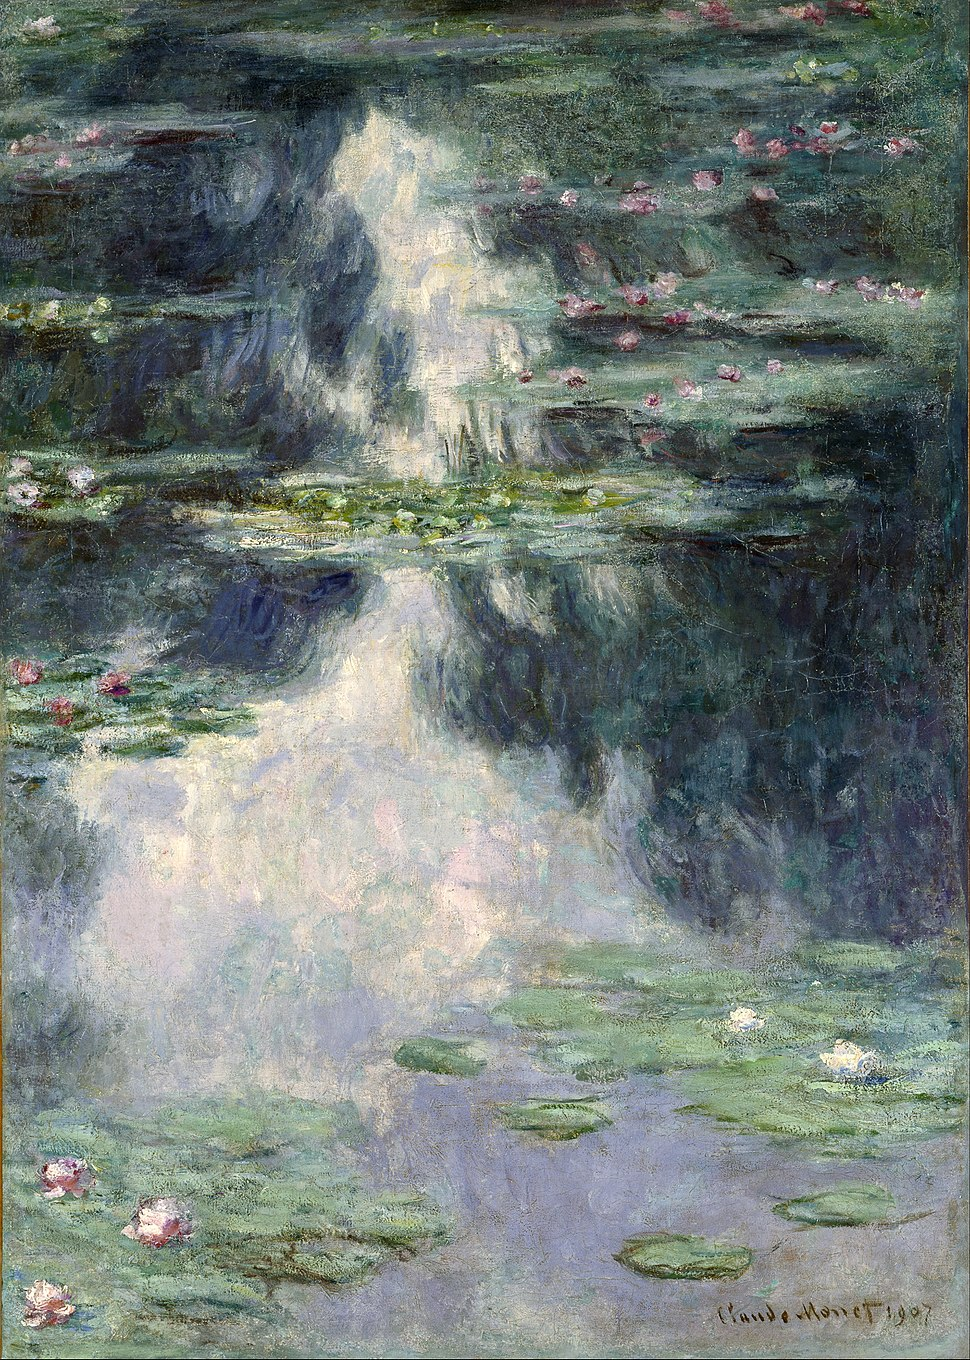 Claude Monet - Pond with Water Lilies - Google Art Project